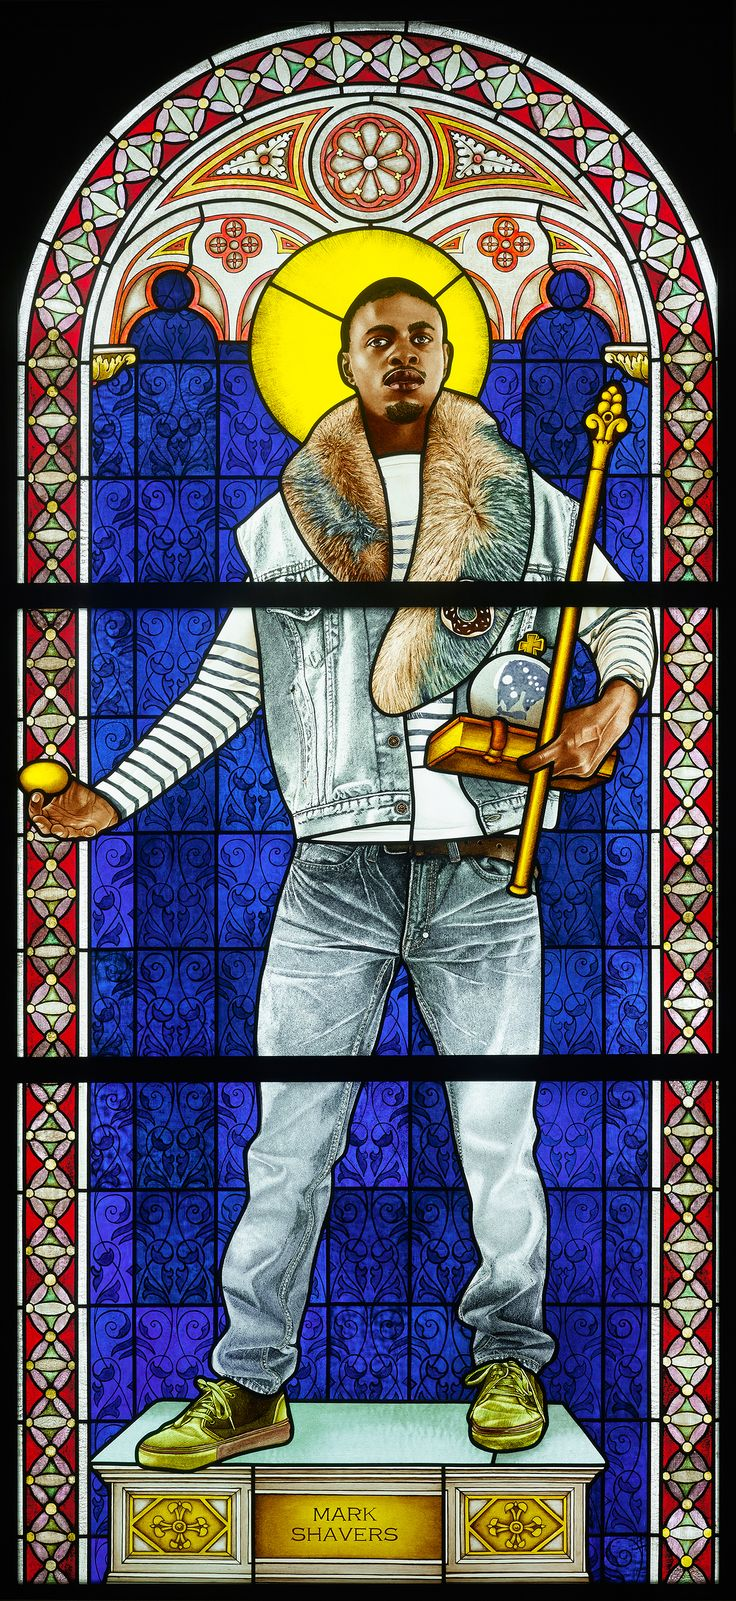 e3fb526d6a992922974109f0ca49be90--glasses--kehinde-wiley.jpg